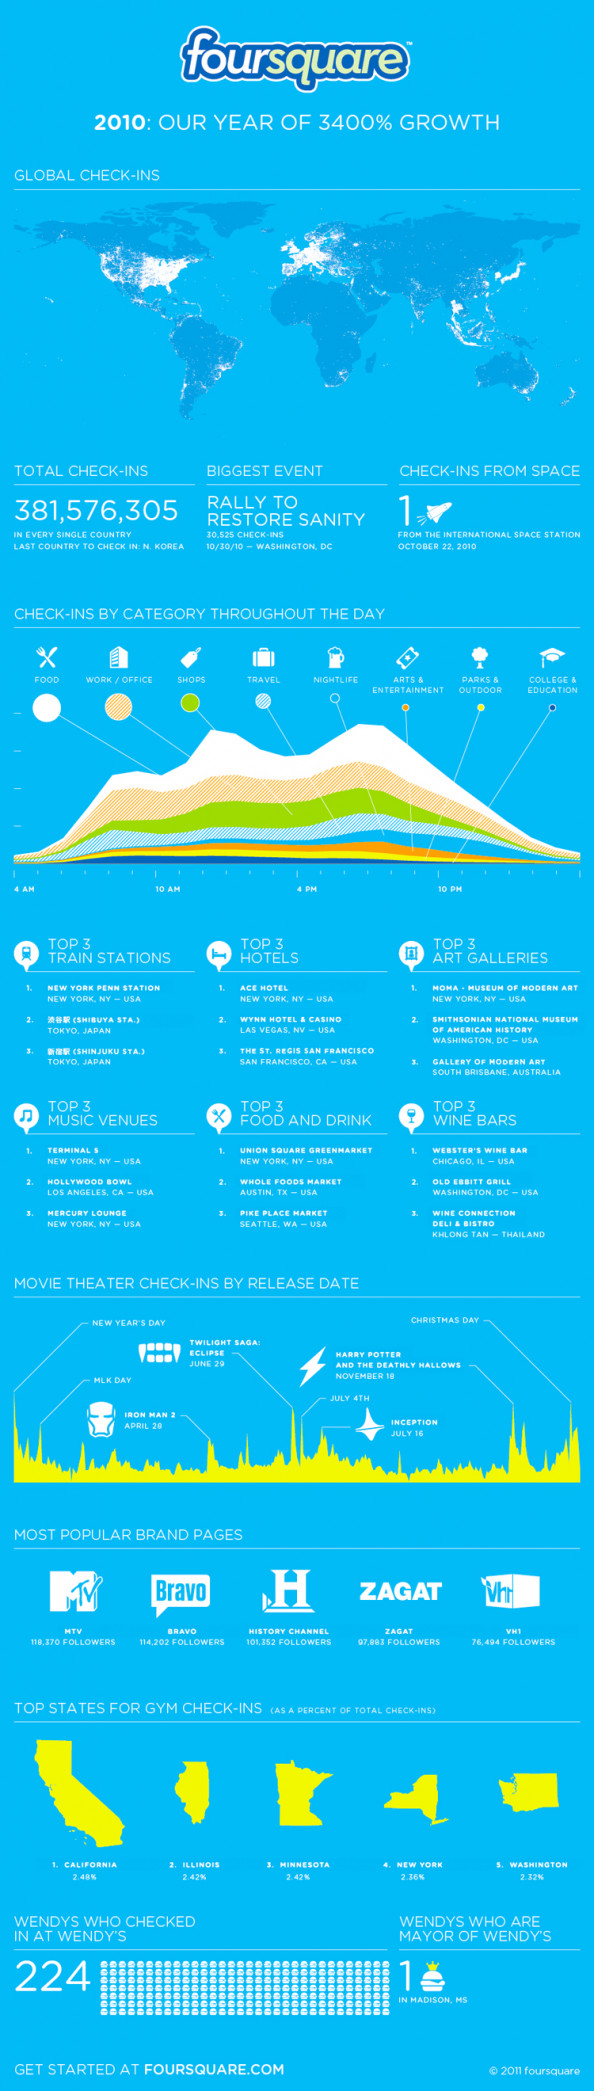 How Foursquare Grew 3400% in One Year Infographic